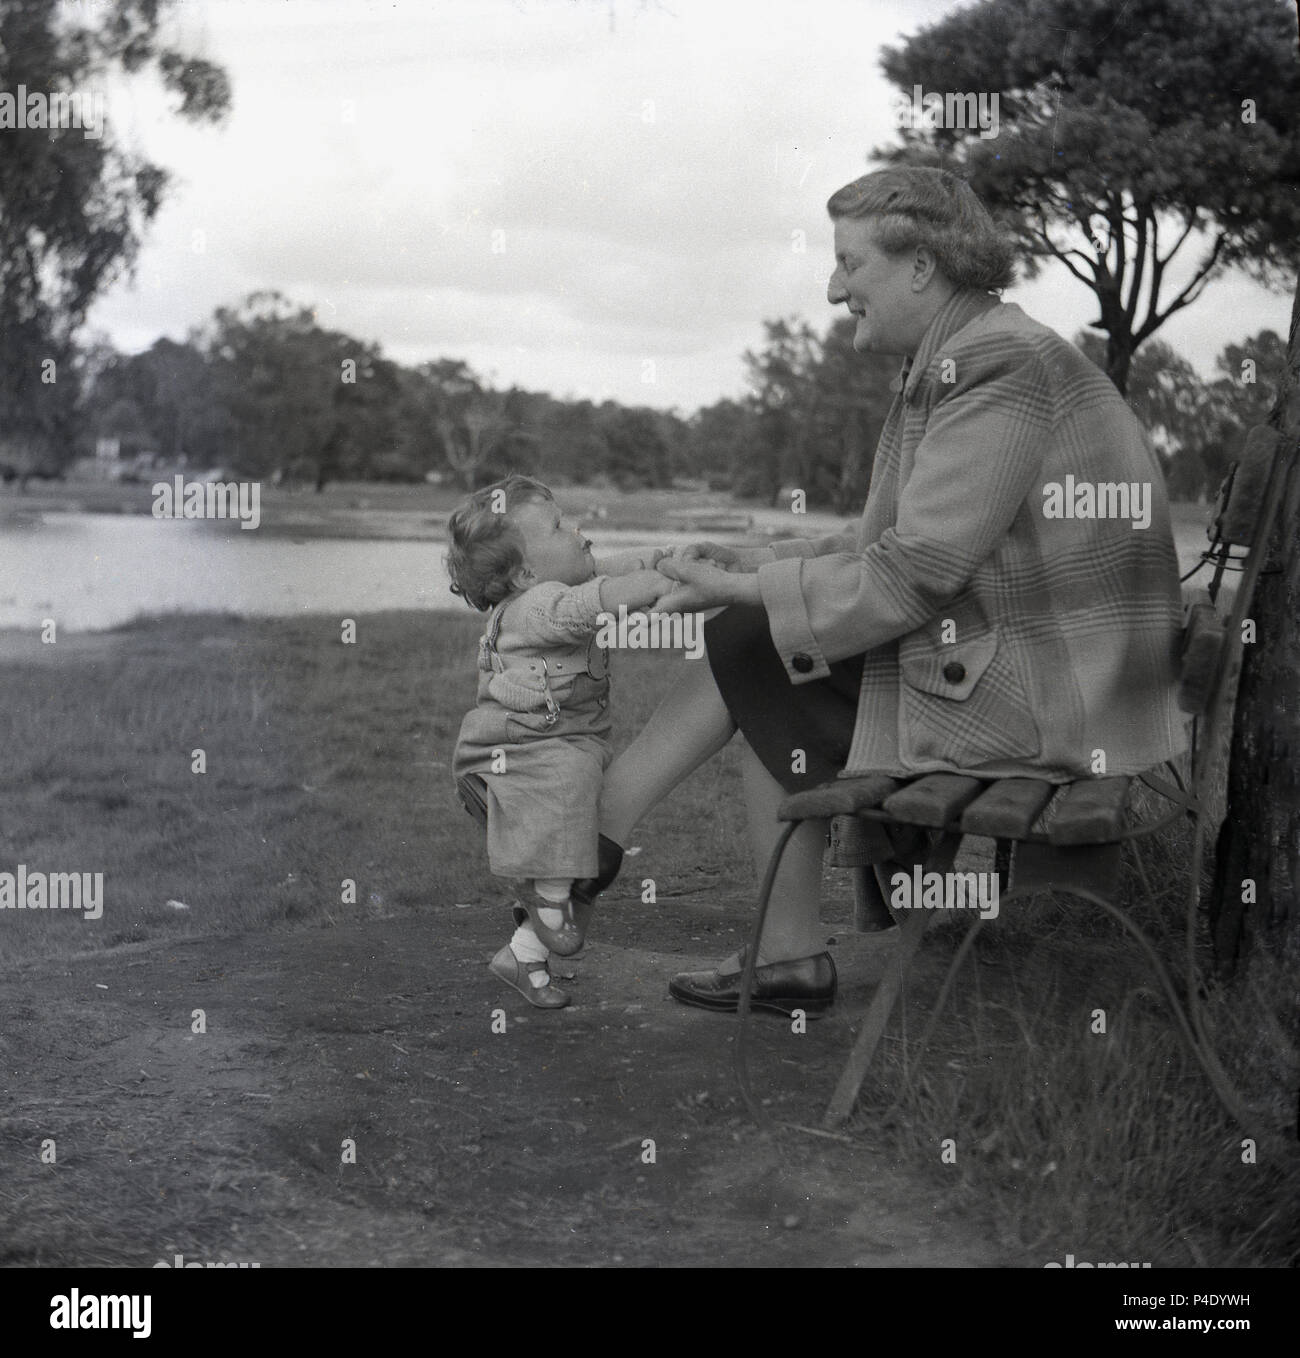 1950s, historical. a grandmother sitting on a bench playing with her infant granddaugher outside in a park. In this post-war era in Britain, the grandparents had a big role tp play in infant childcare as creches, nursery and pre-schools were not fully established. - Stock Image